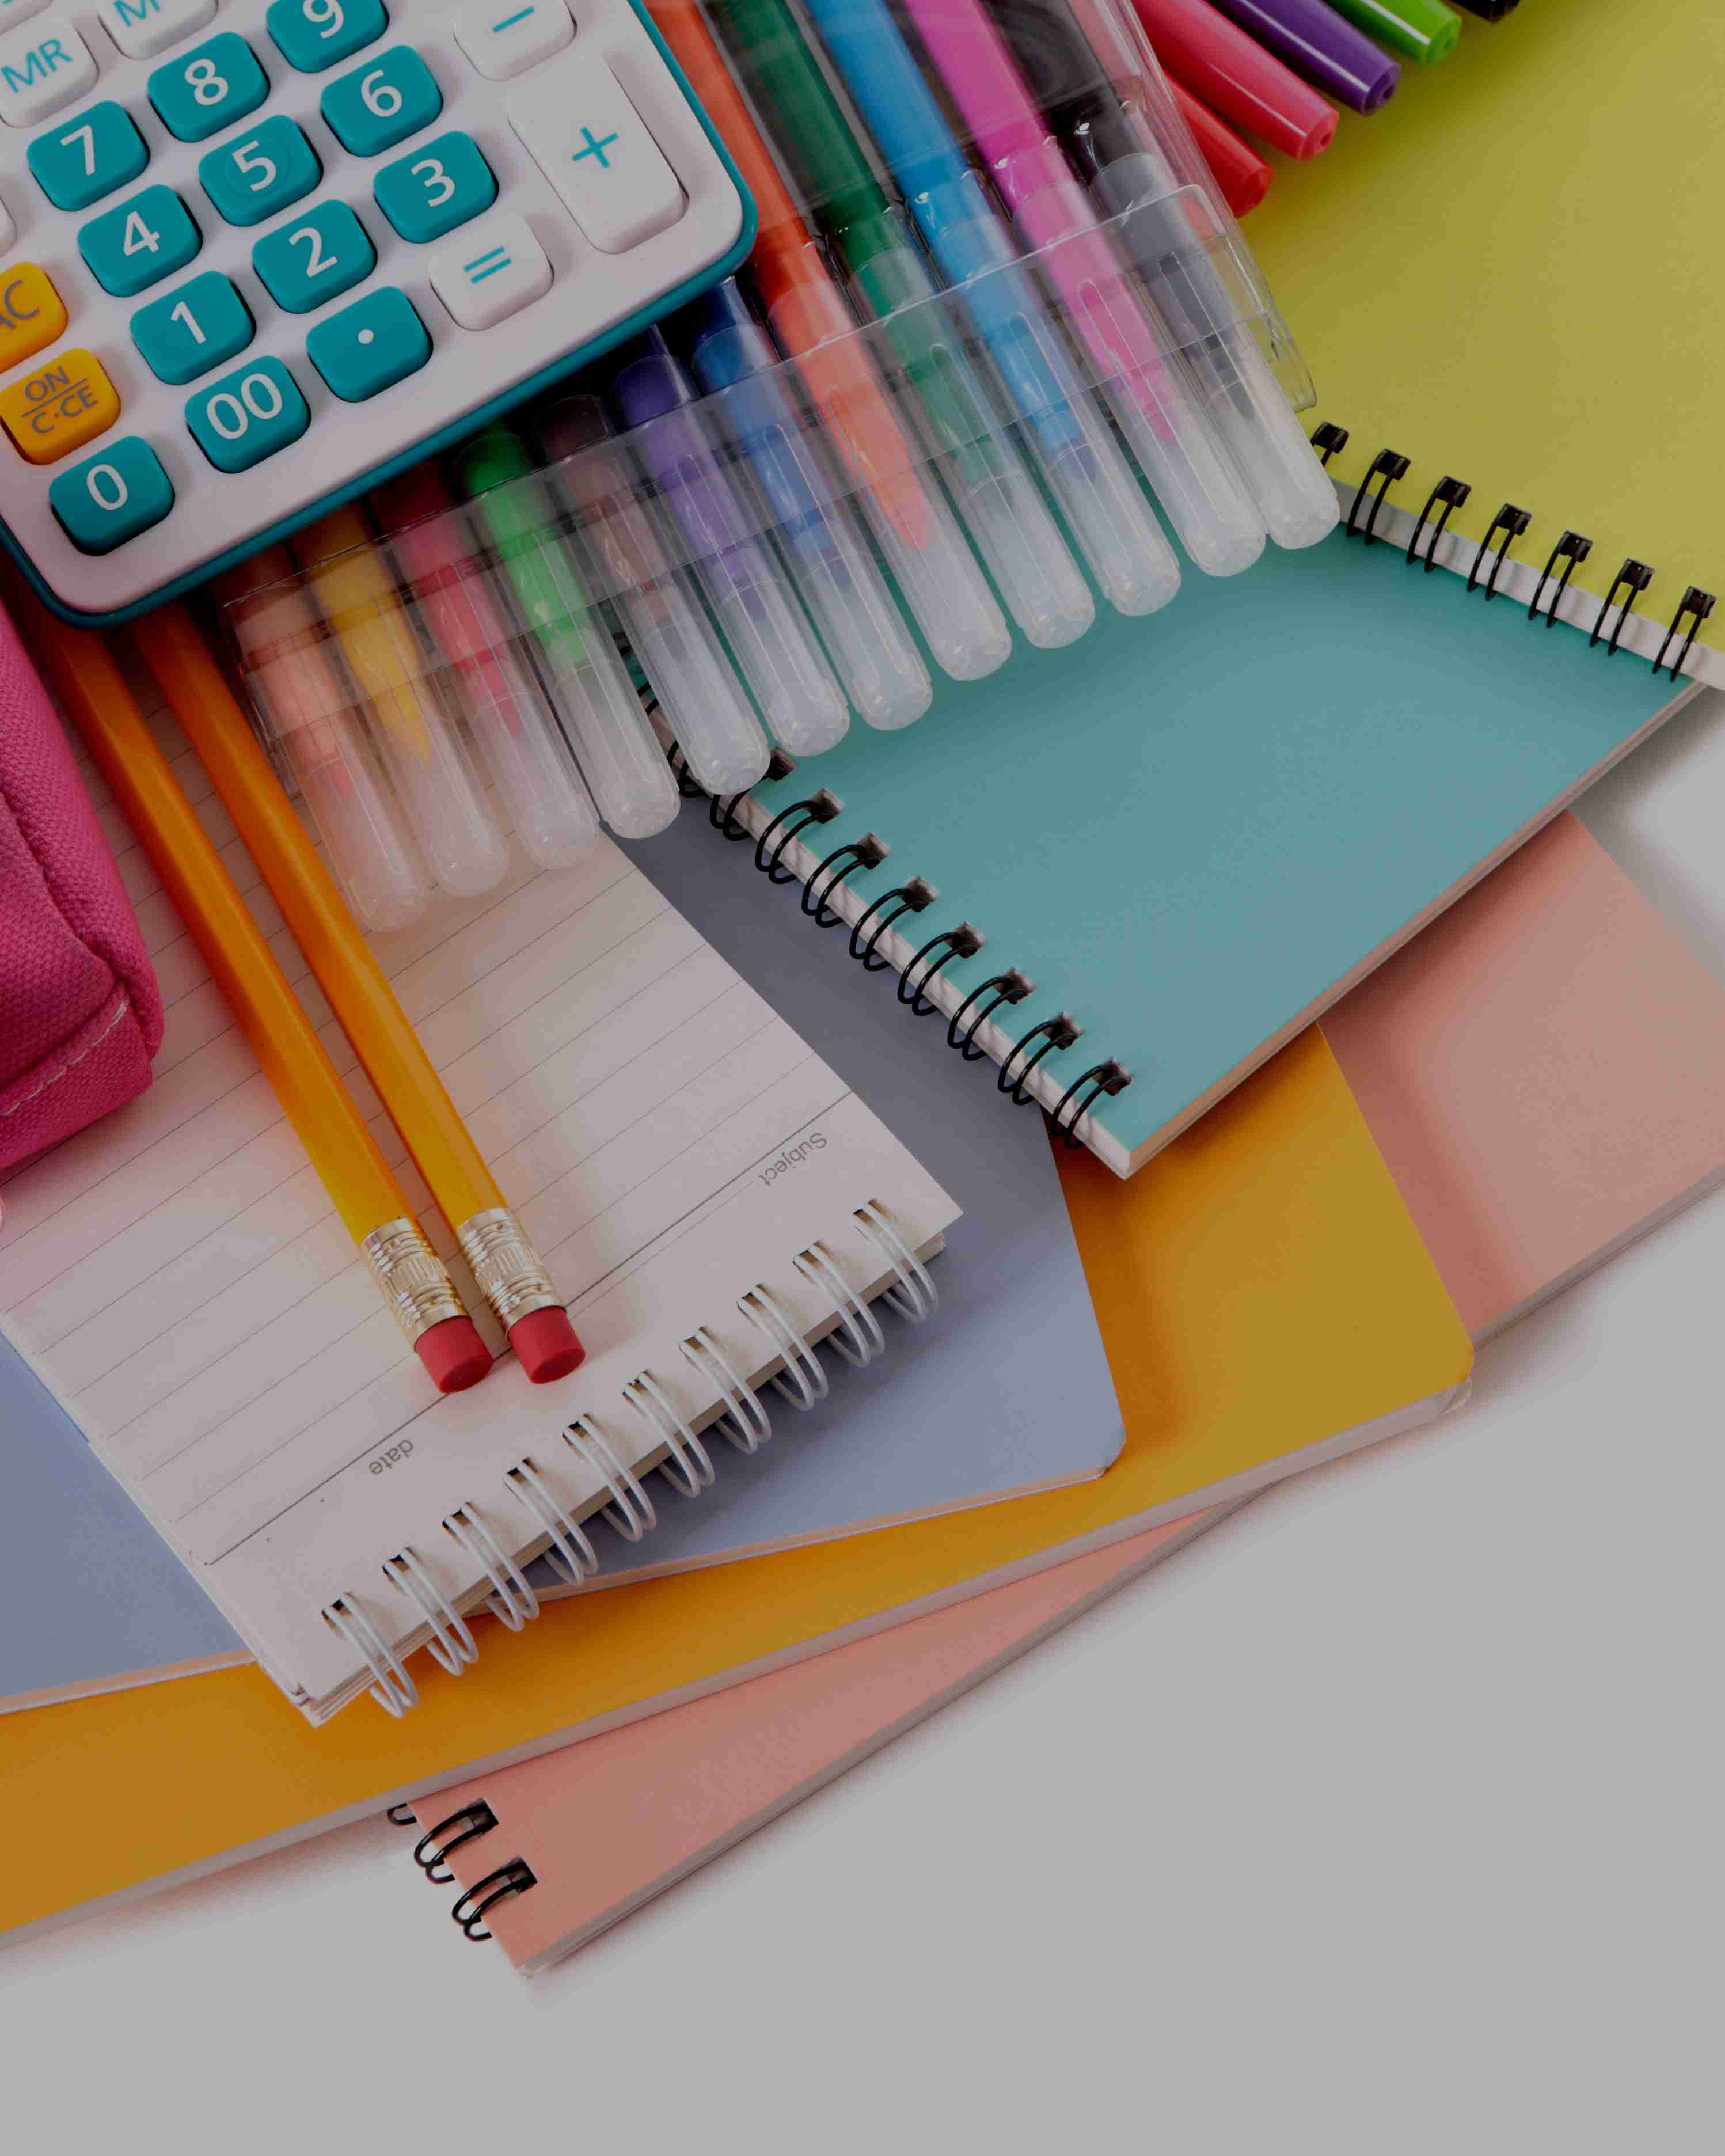 AA Stationery | Kota Kinabalu, Sabah | Online Store | COME & PURCHASE FROM US